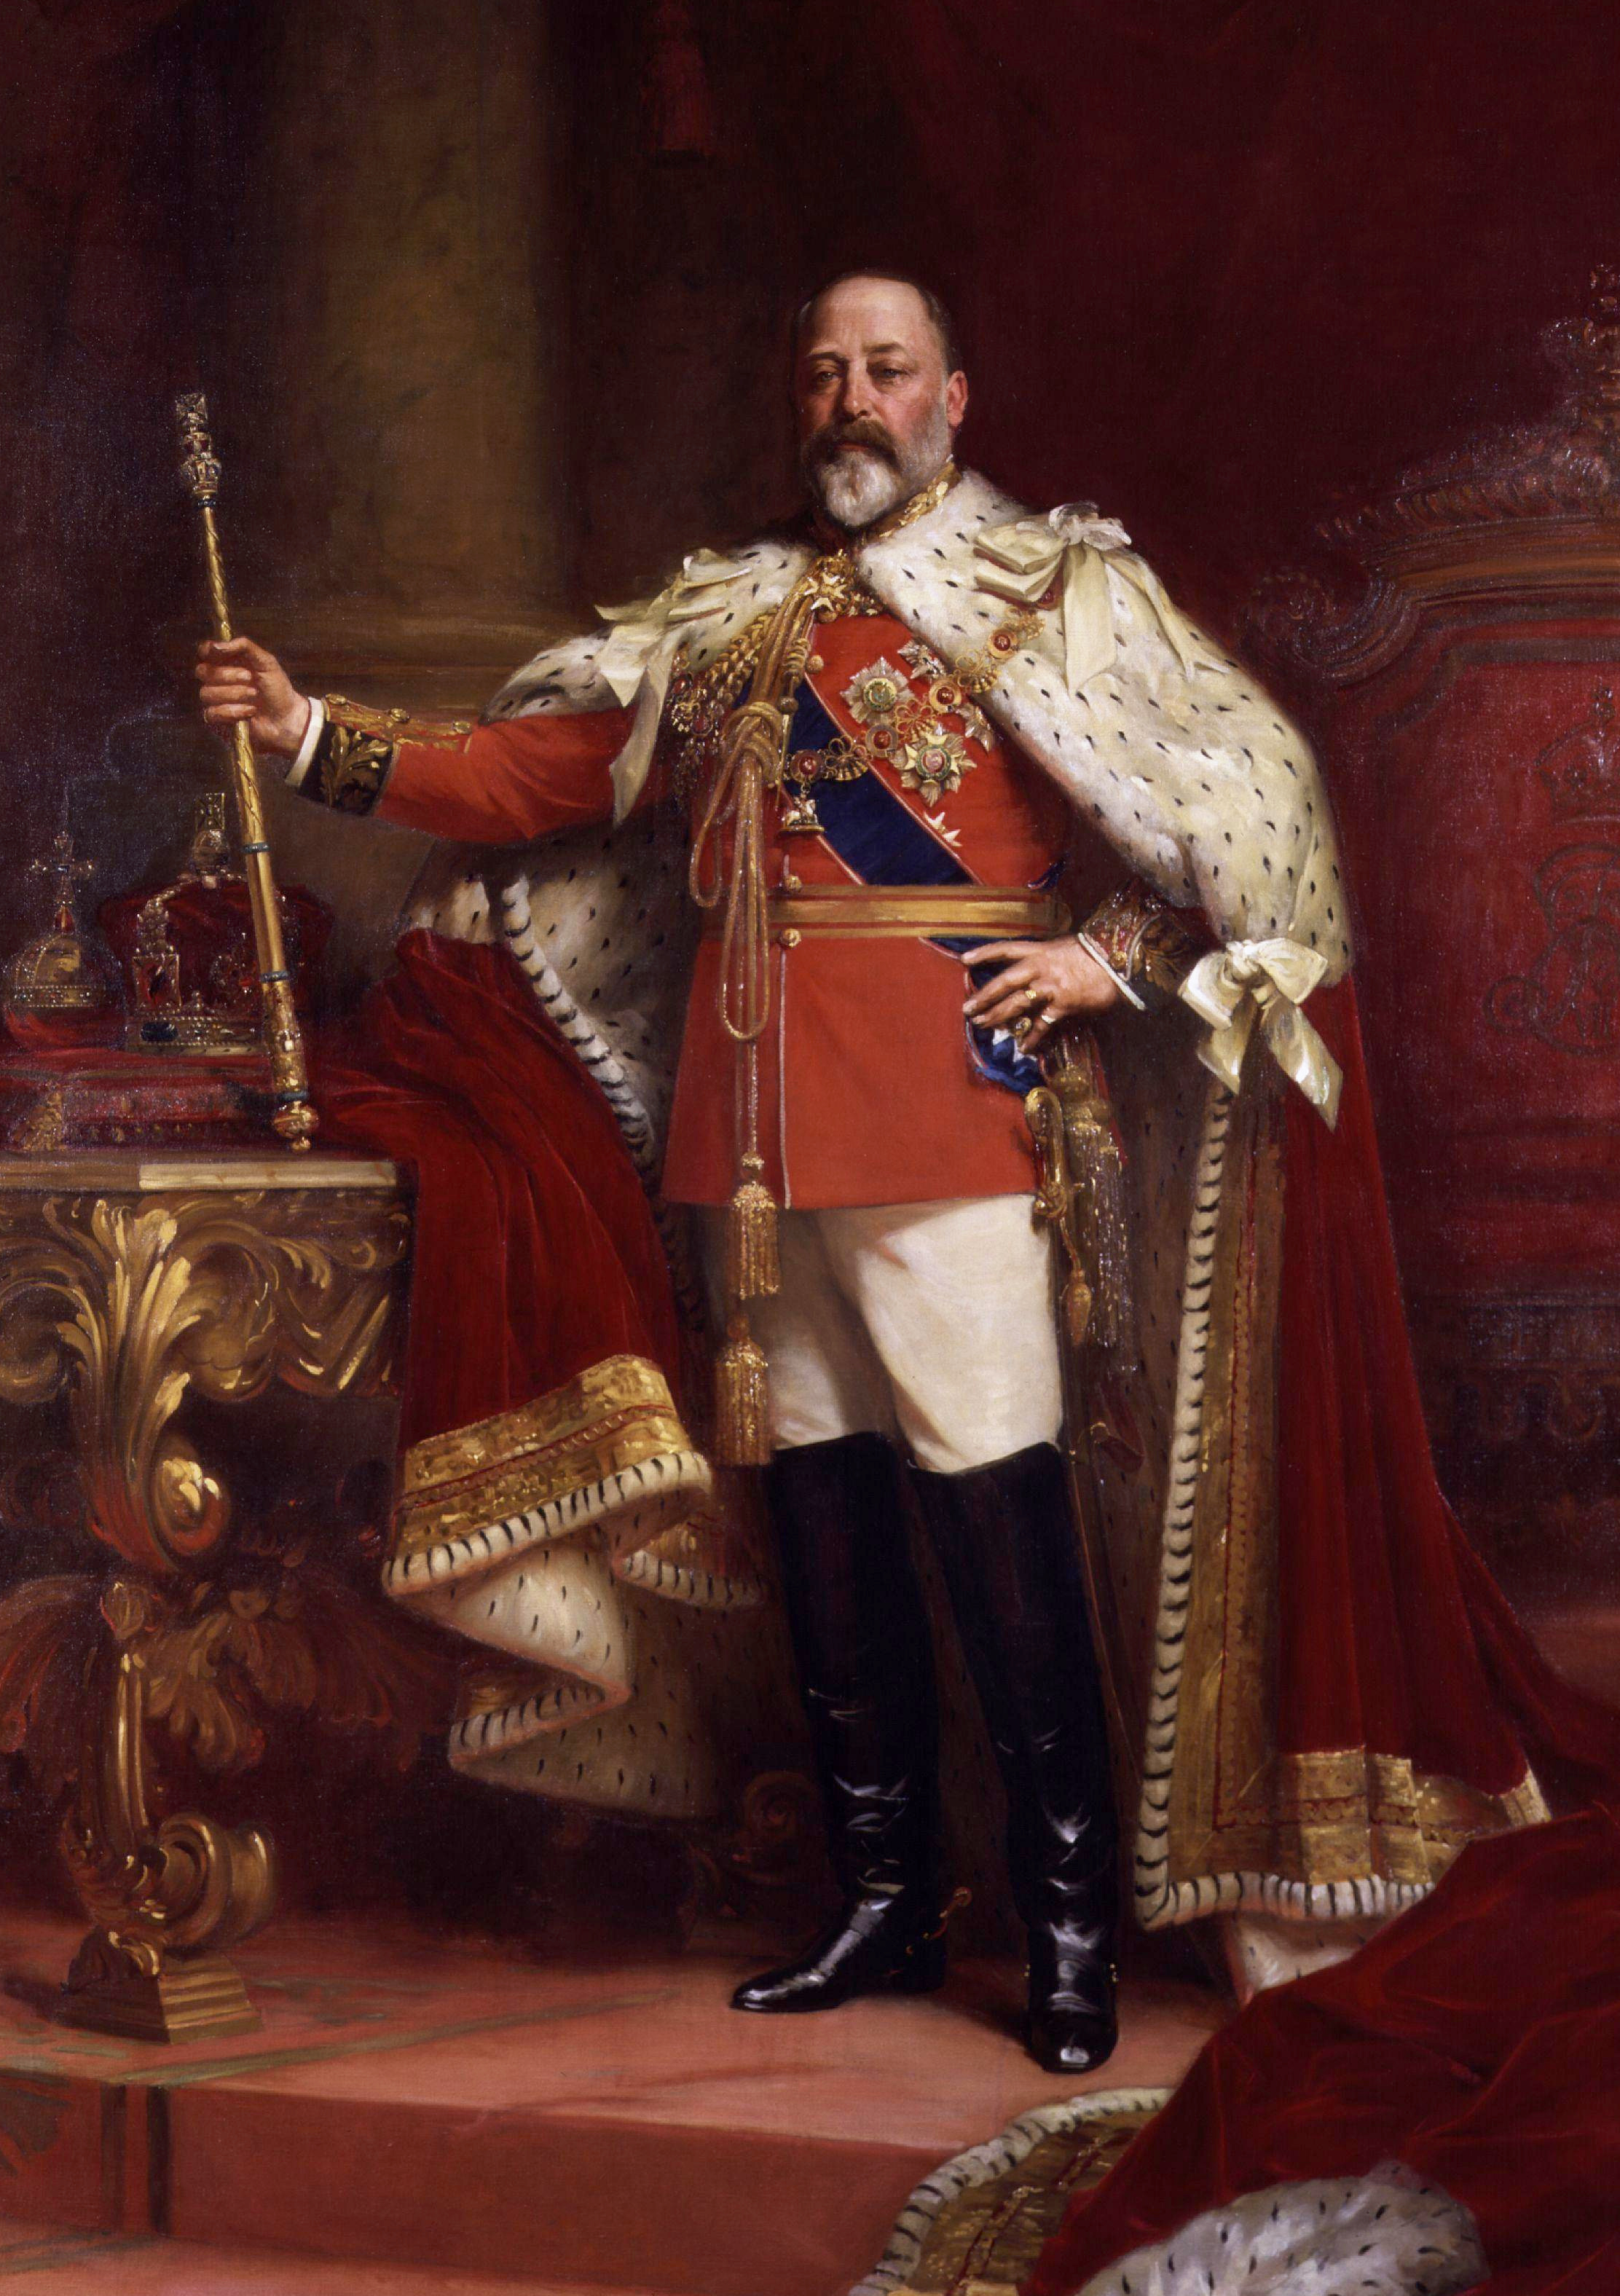 http://upload.wikimedia.org/wikipedia/commons/0/04/King_Edward_VII_portrait.jpg